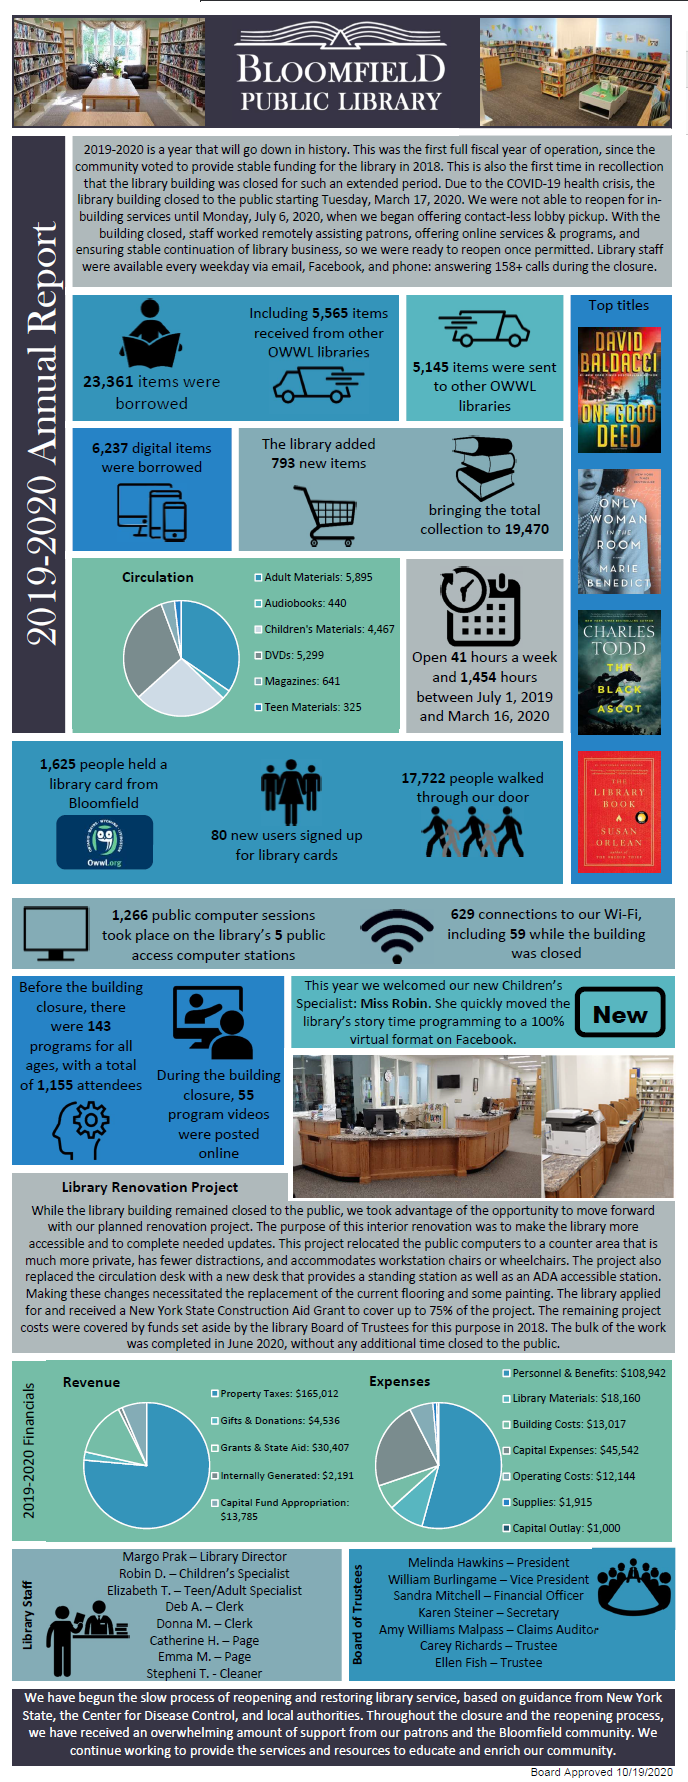 2019-2020 Bloomfield Public Library Annual Report